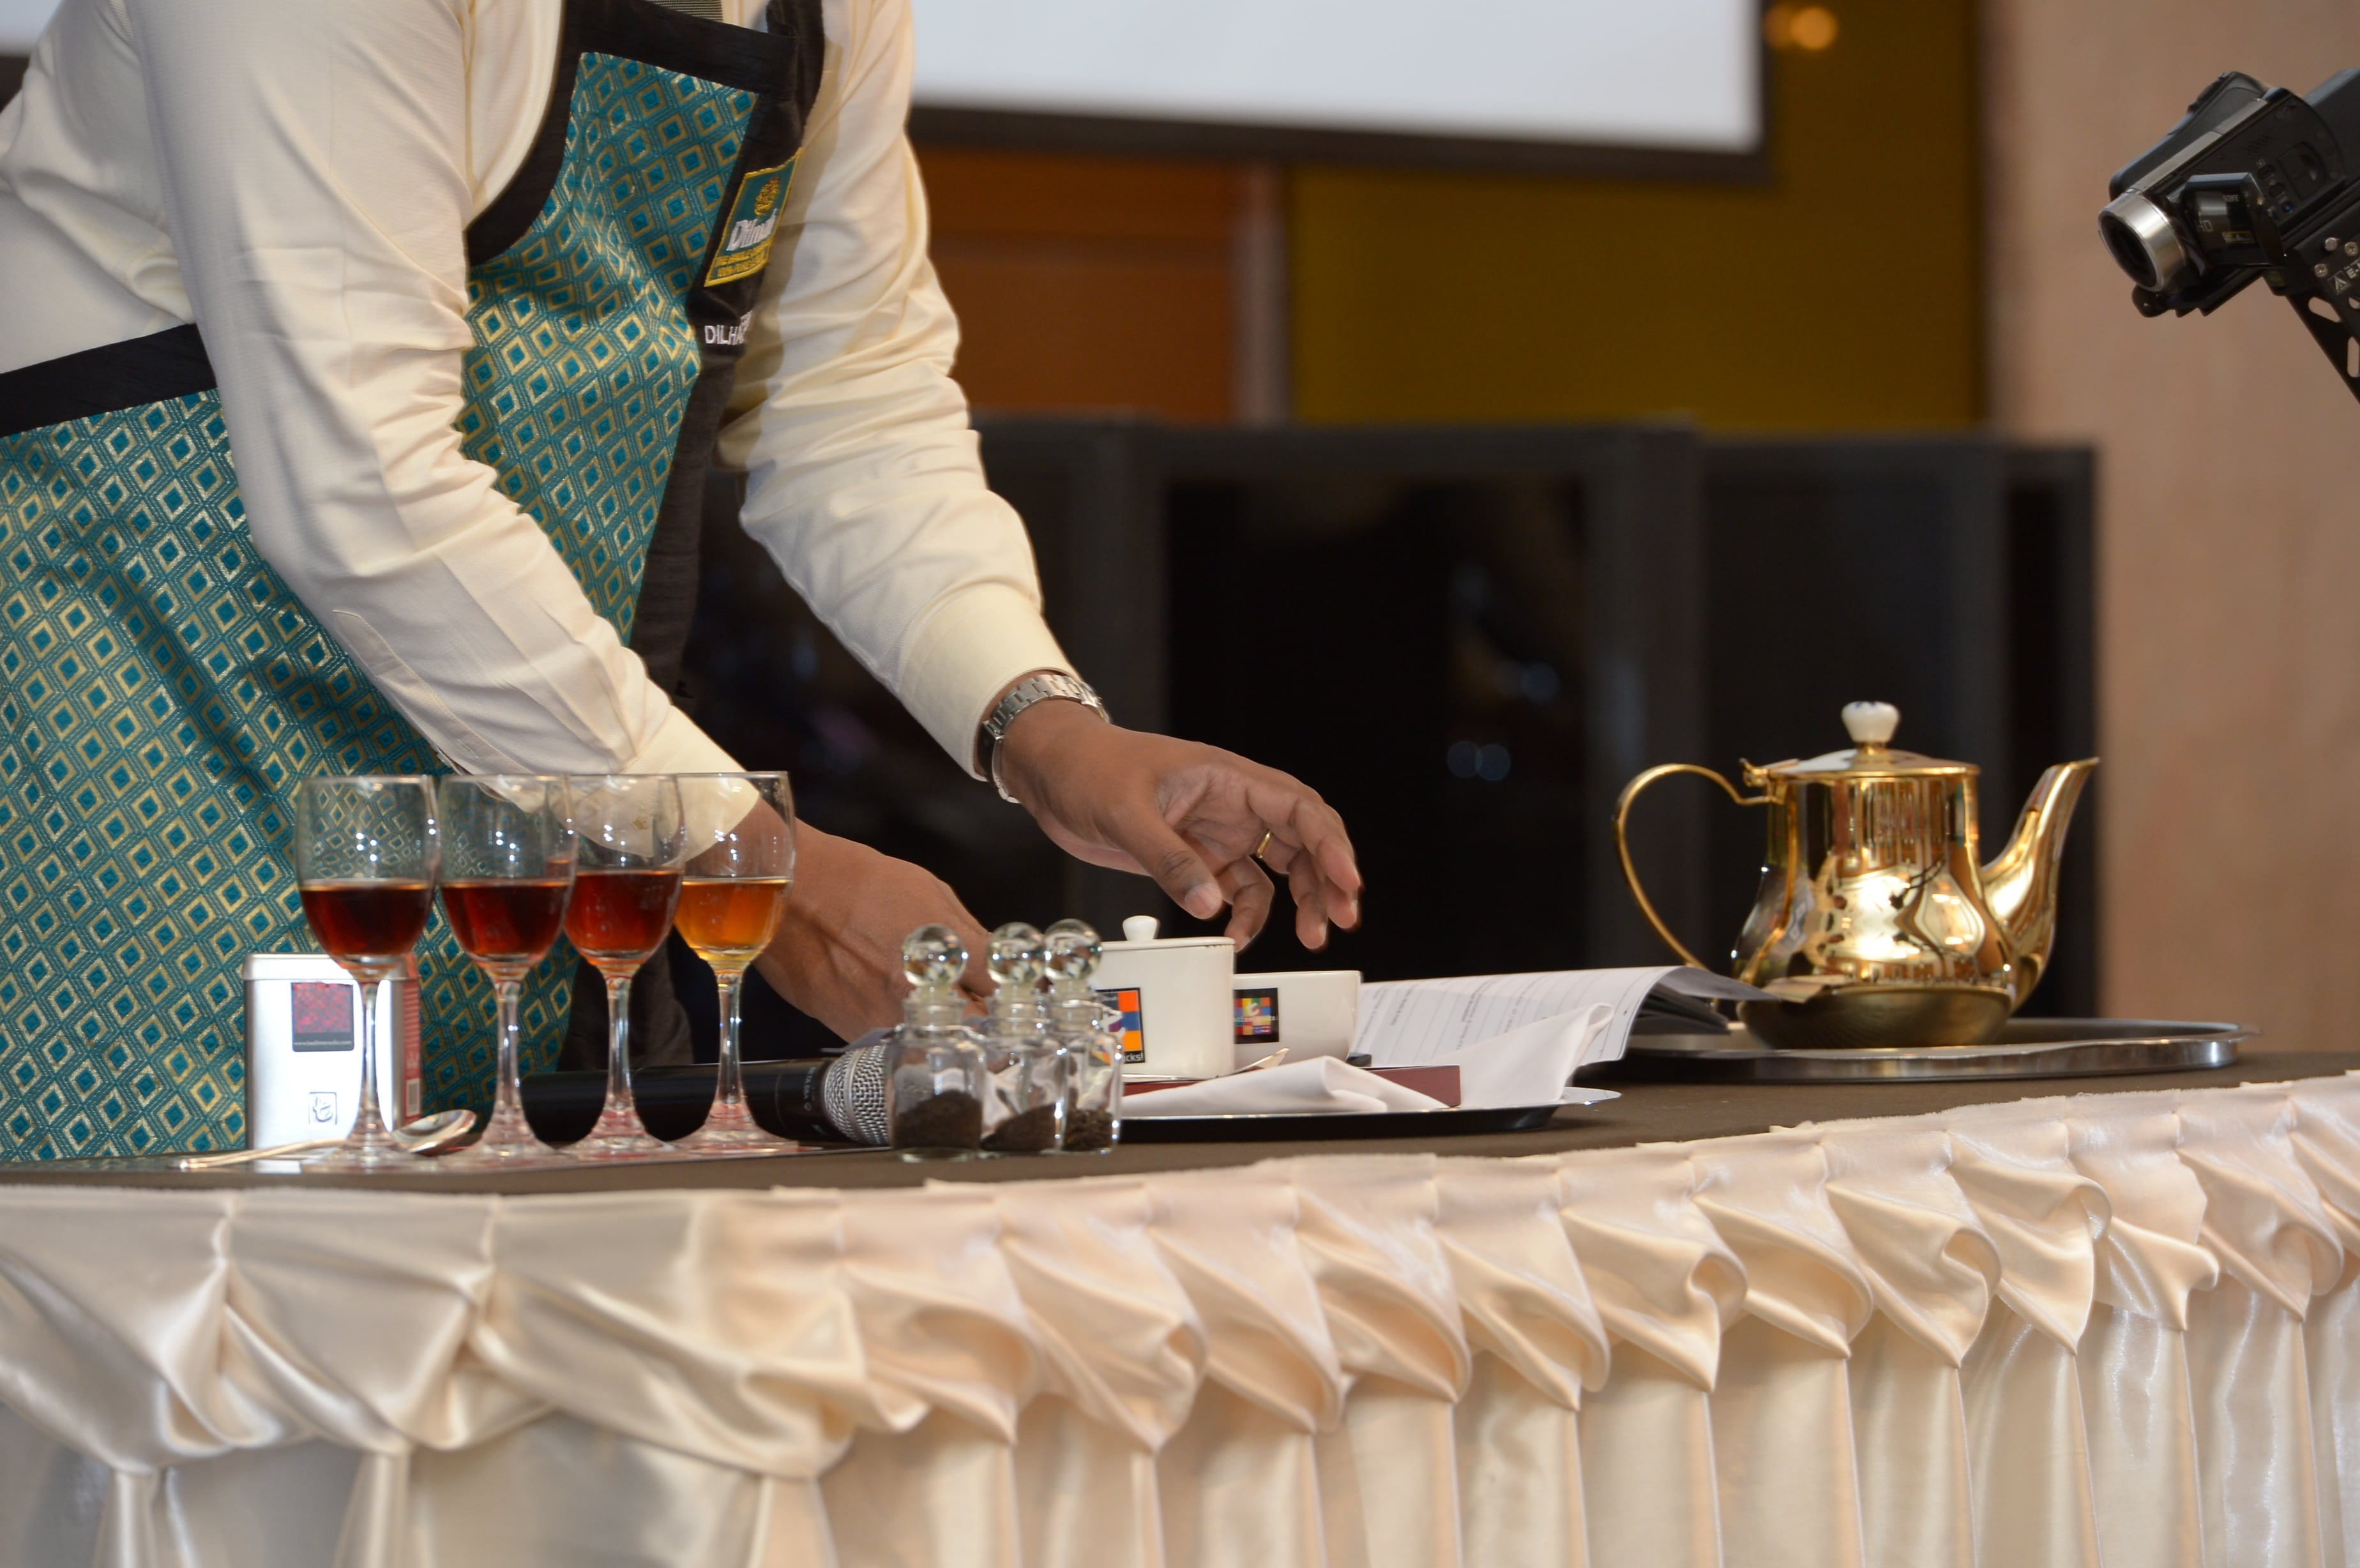 Dilhan C Fernando demonstrating brewing tea